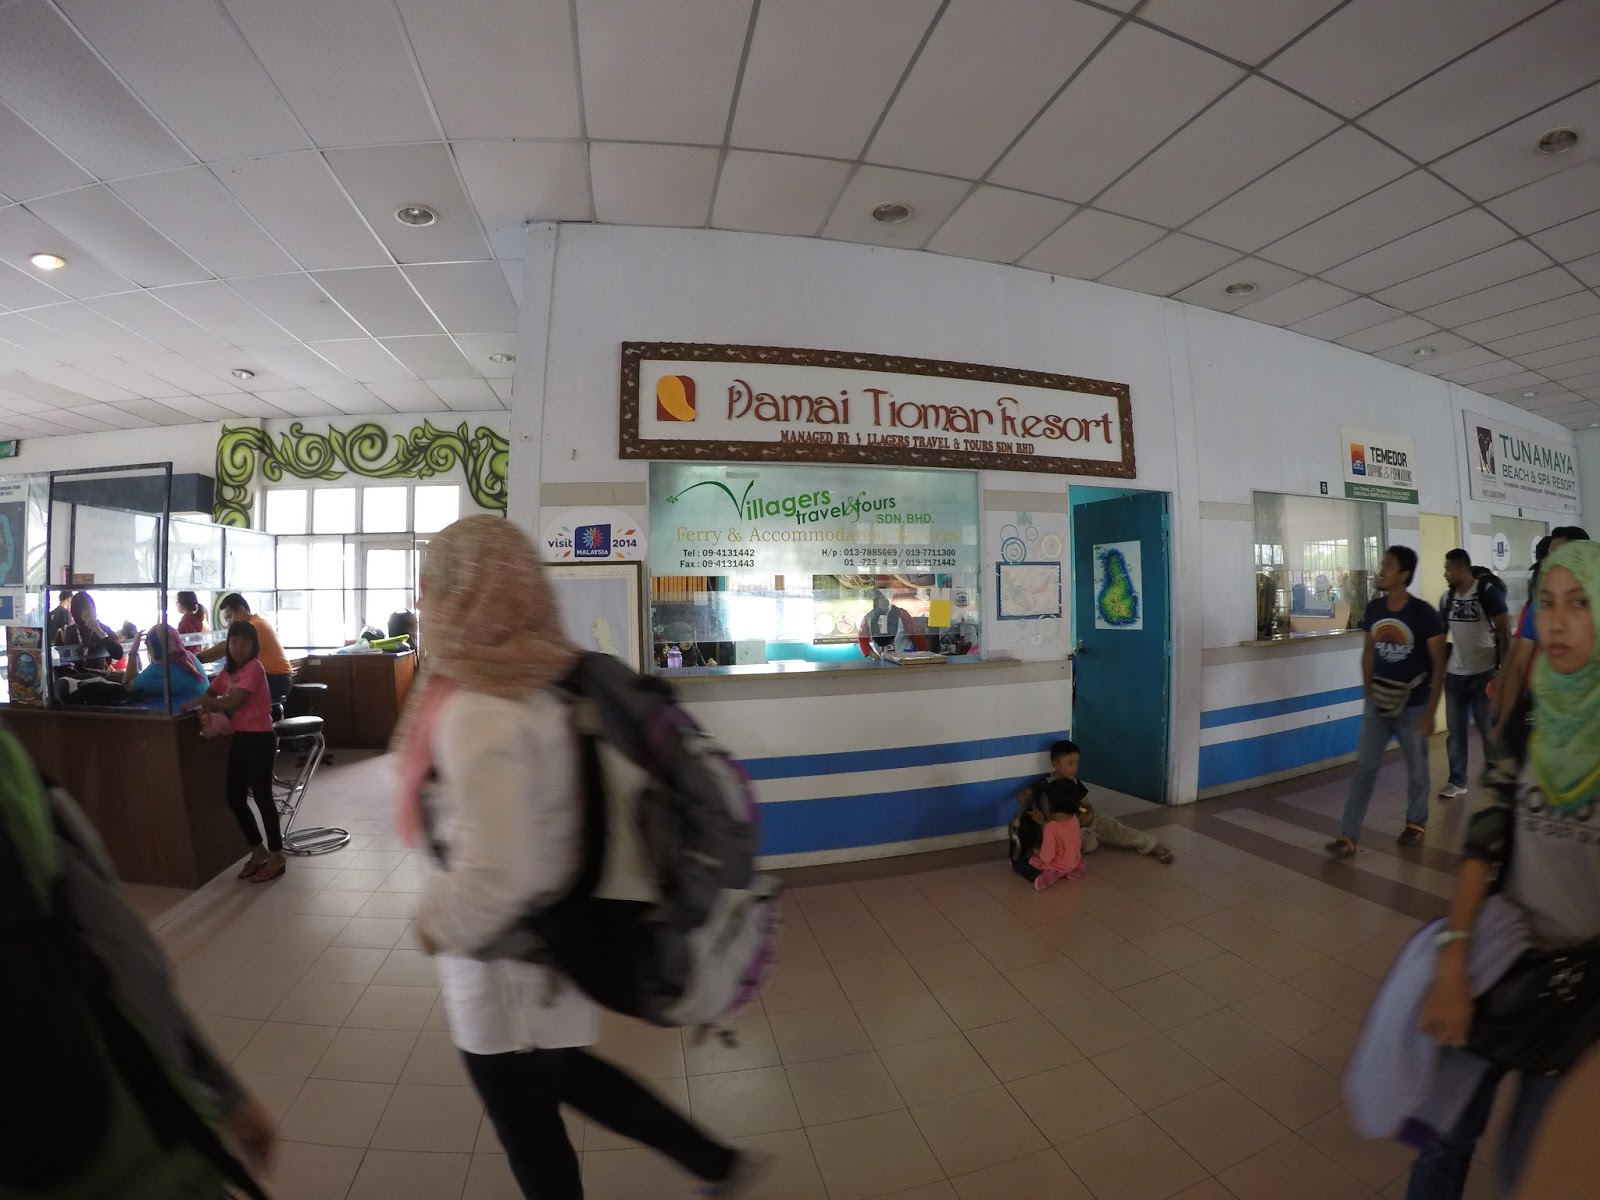 Villagers Travel Tours Sdn Bhd